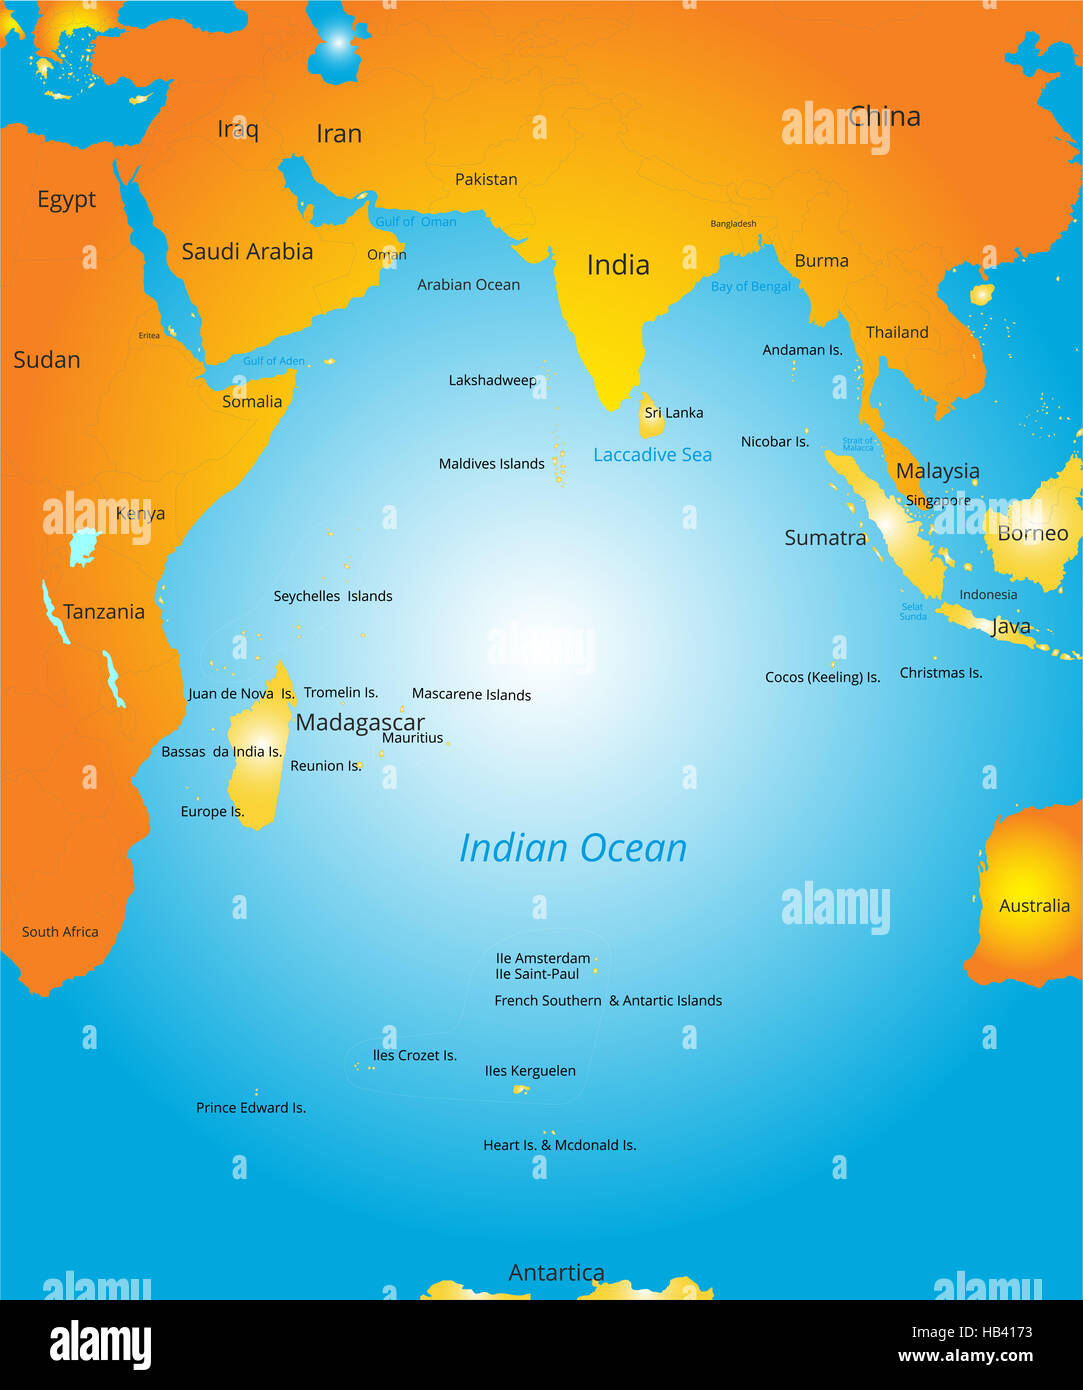 map of indian ocean region stock photo 127322583 alamy